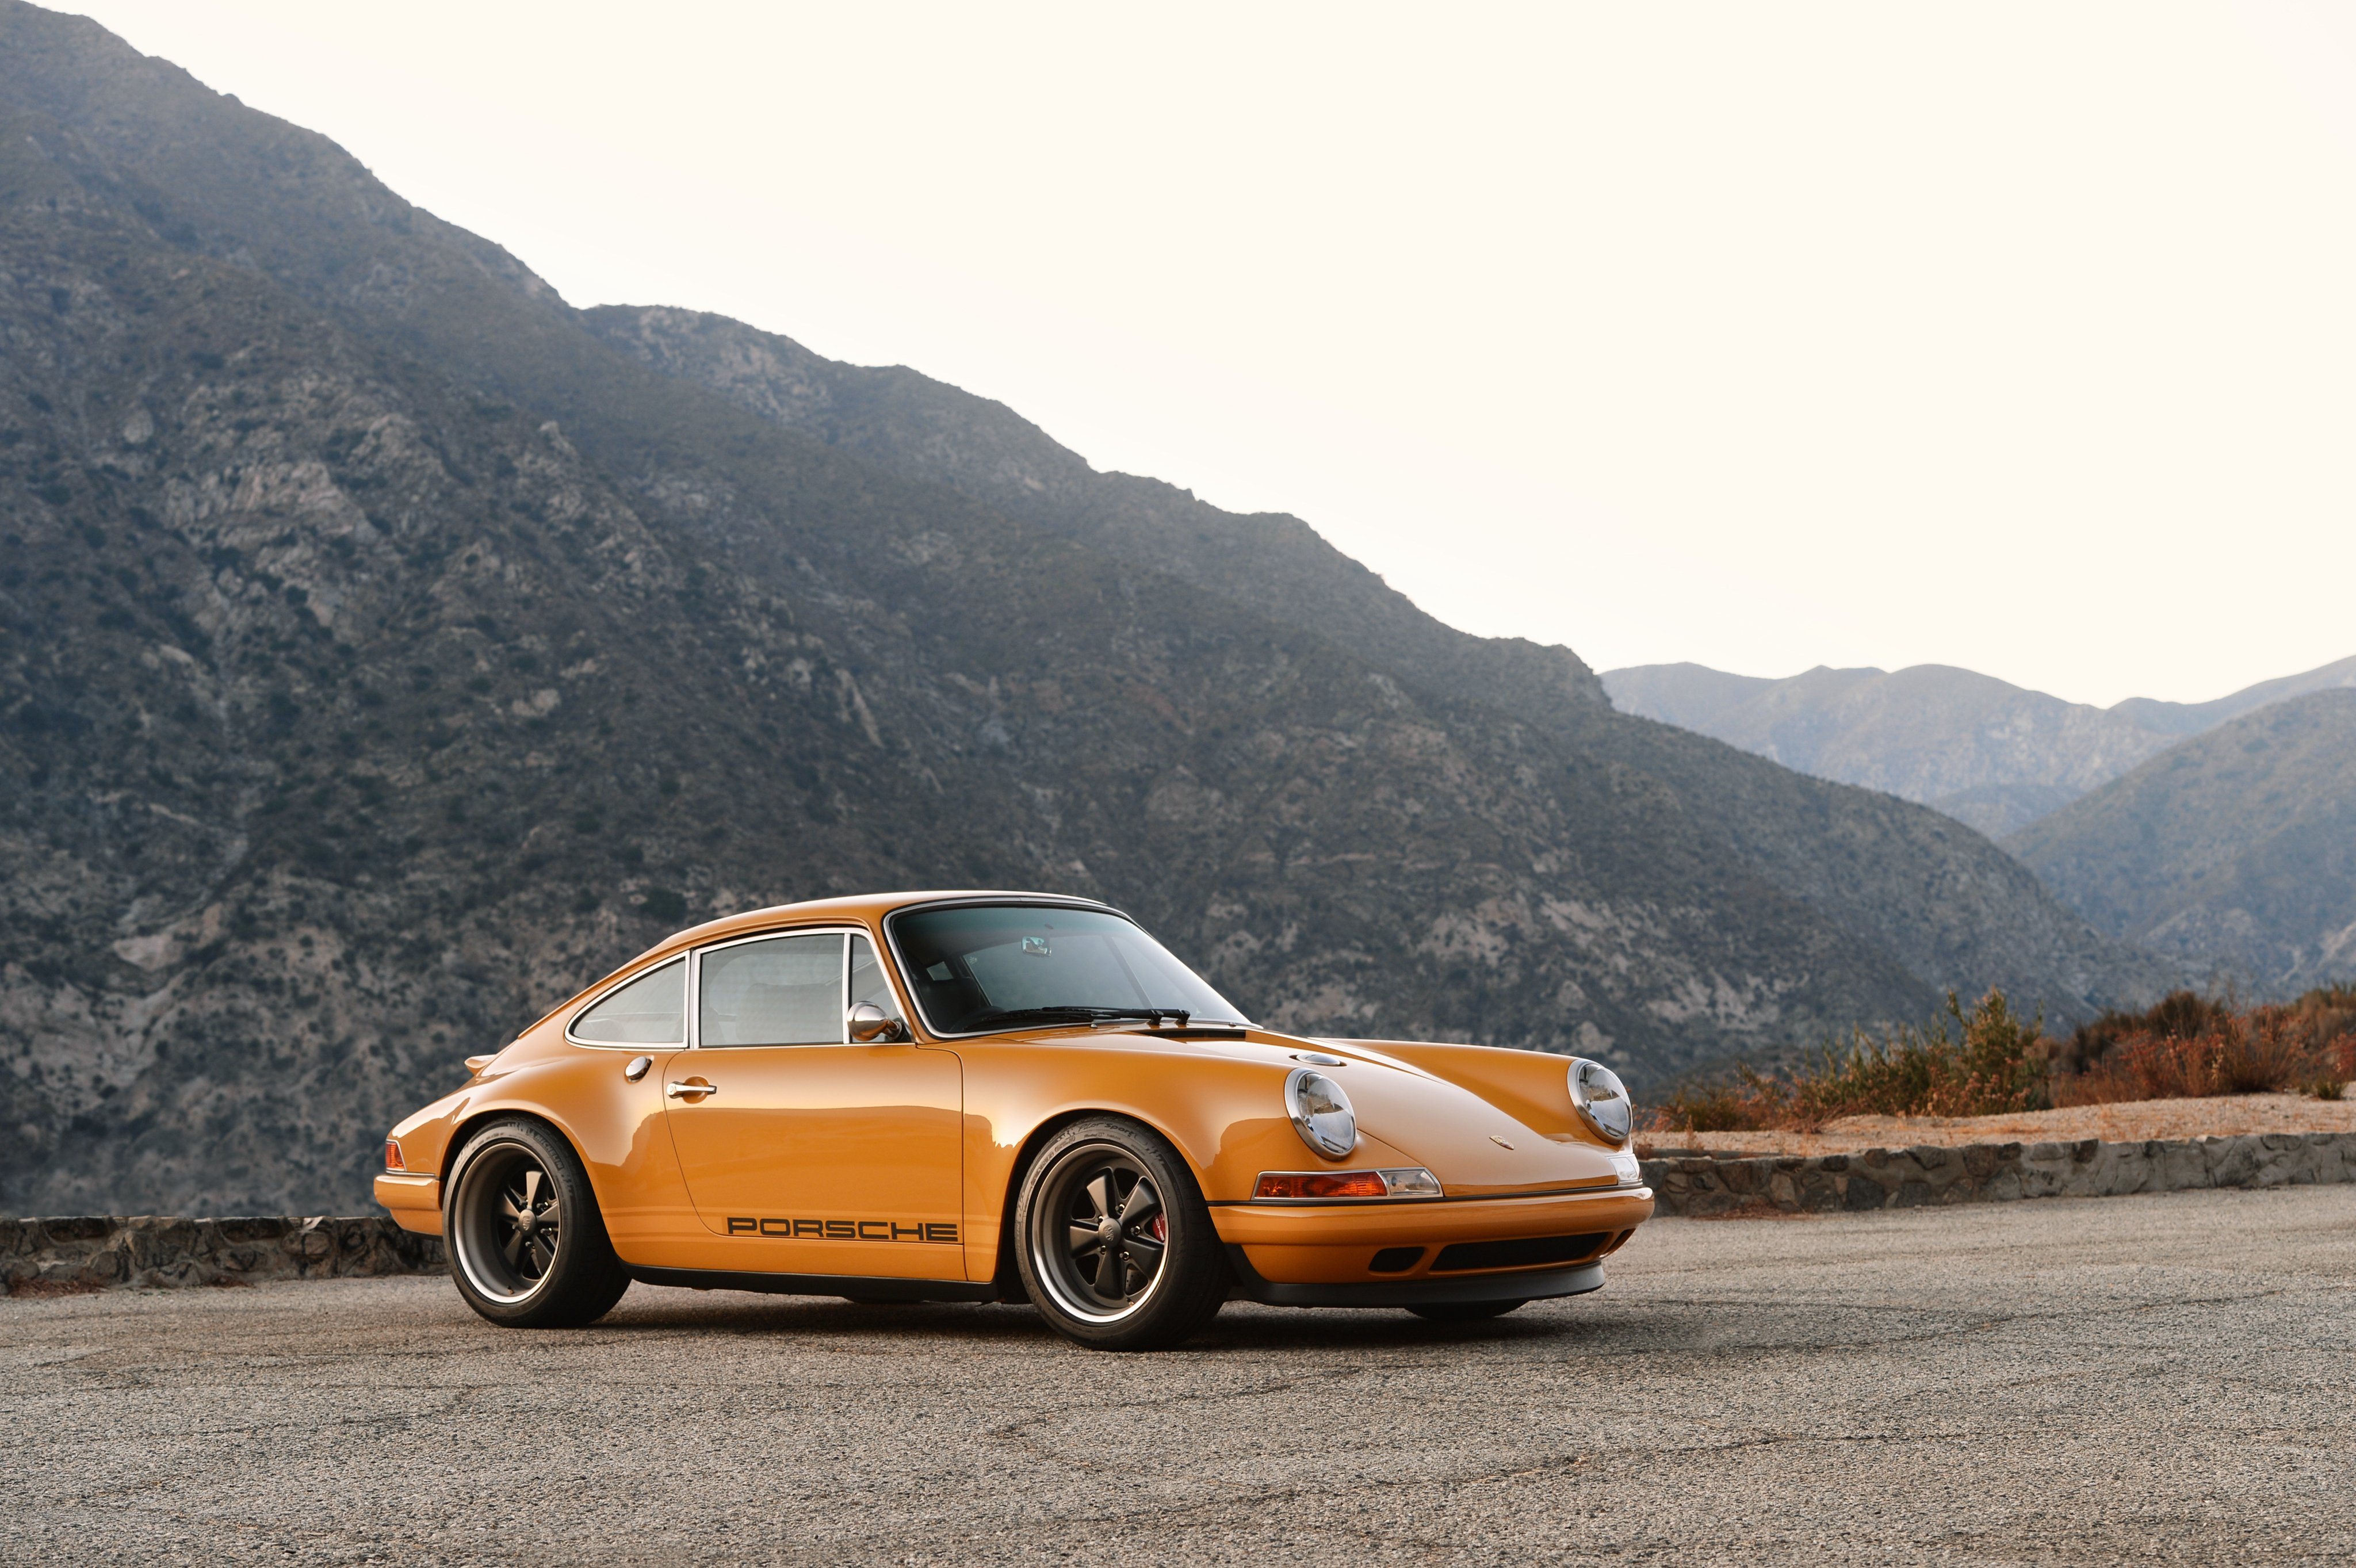 2010 Singer 911 Uk Spec Porsche Wallpaper 4096x2726